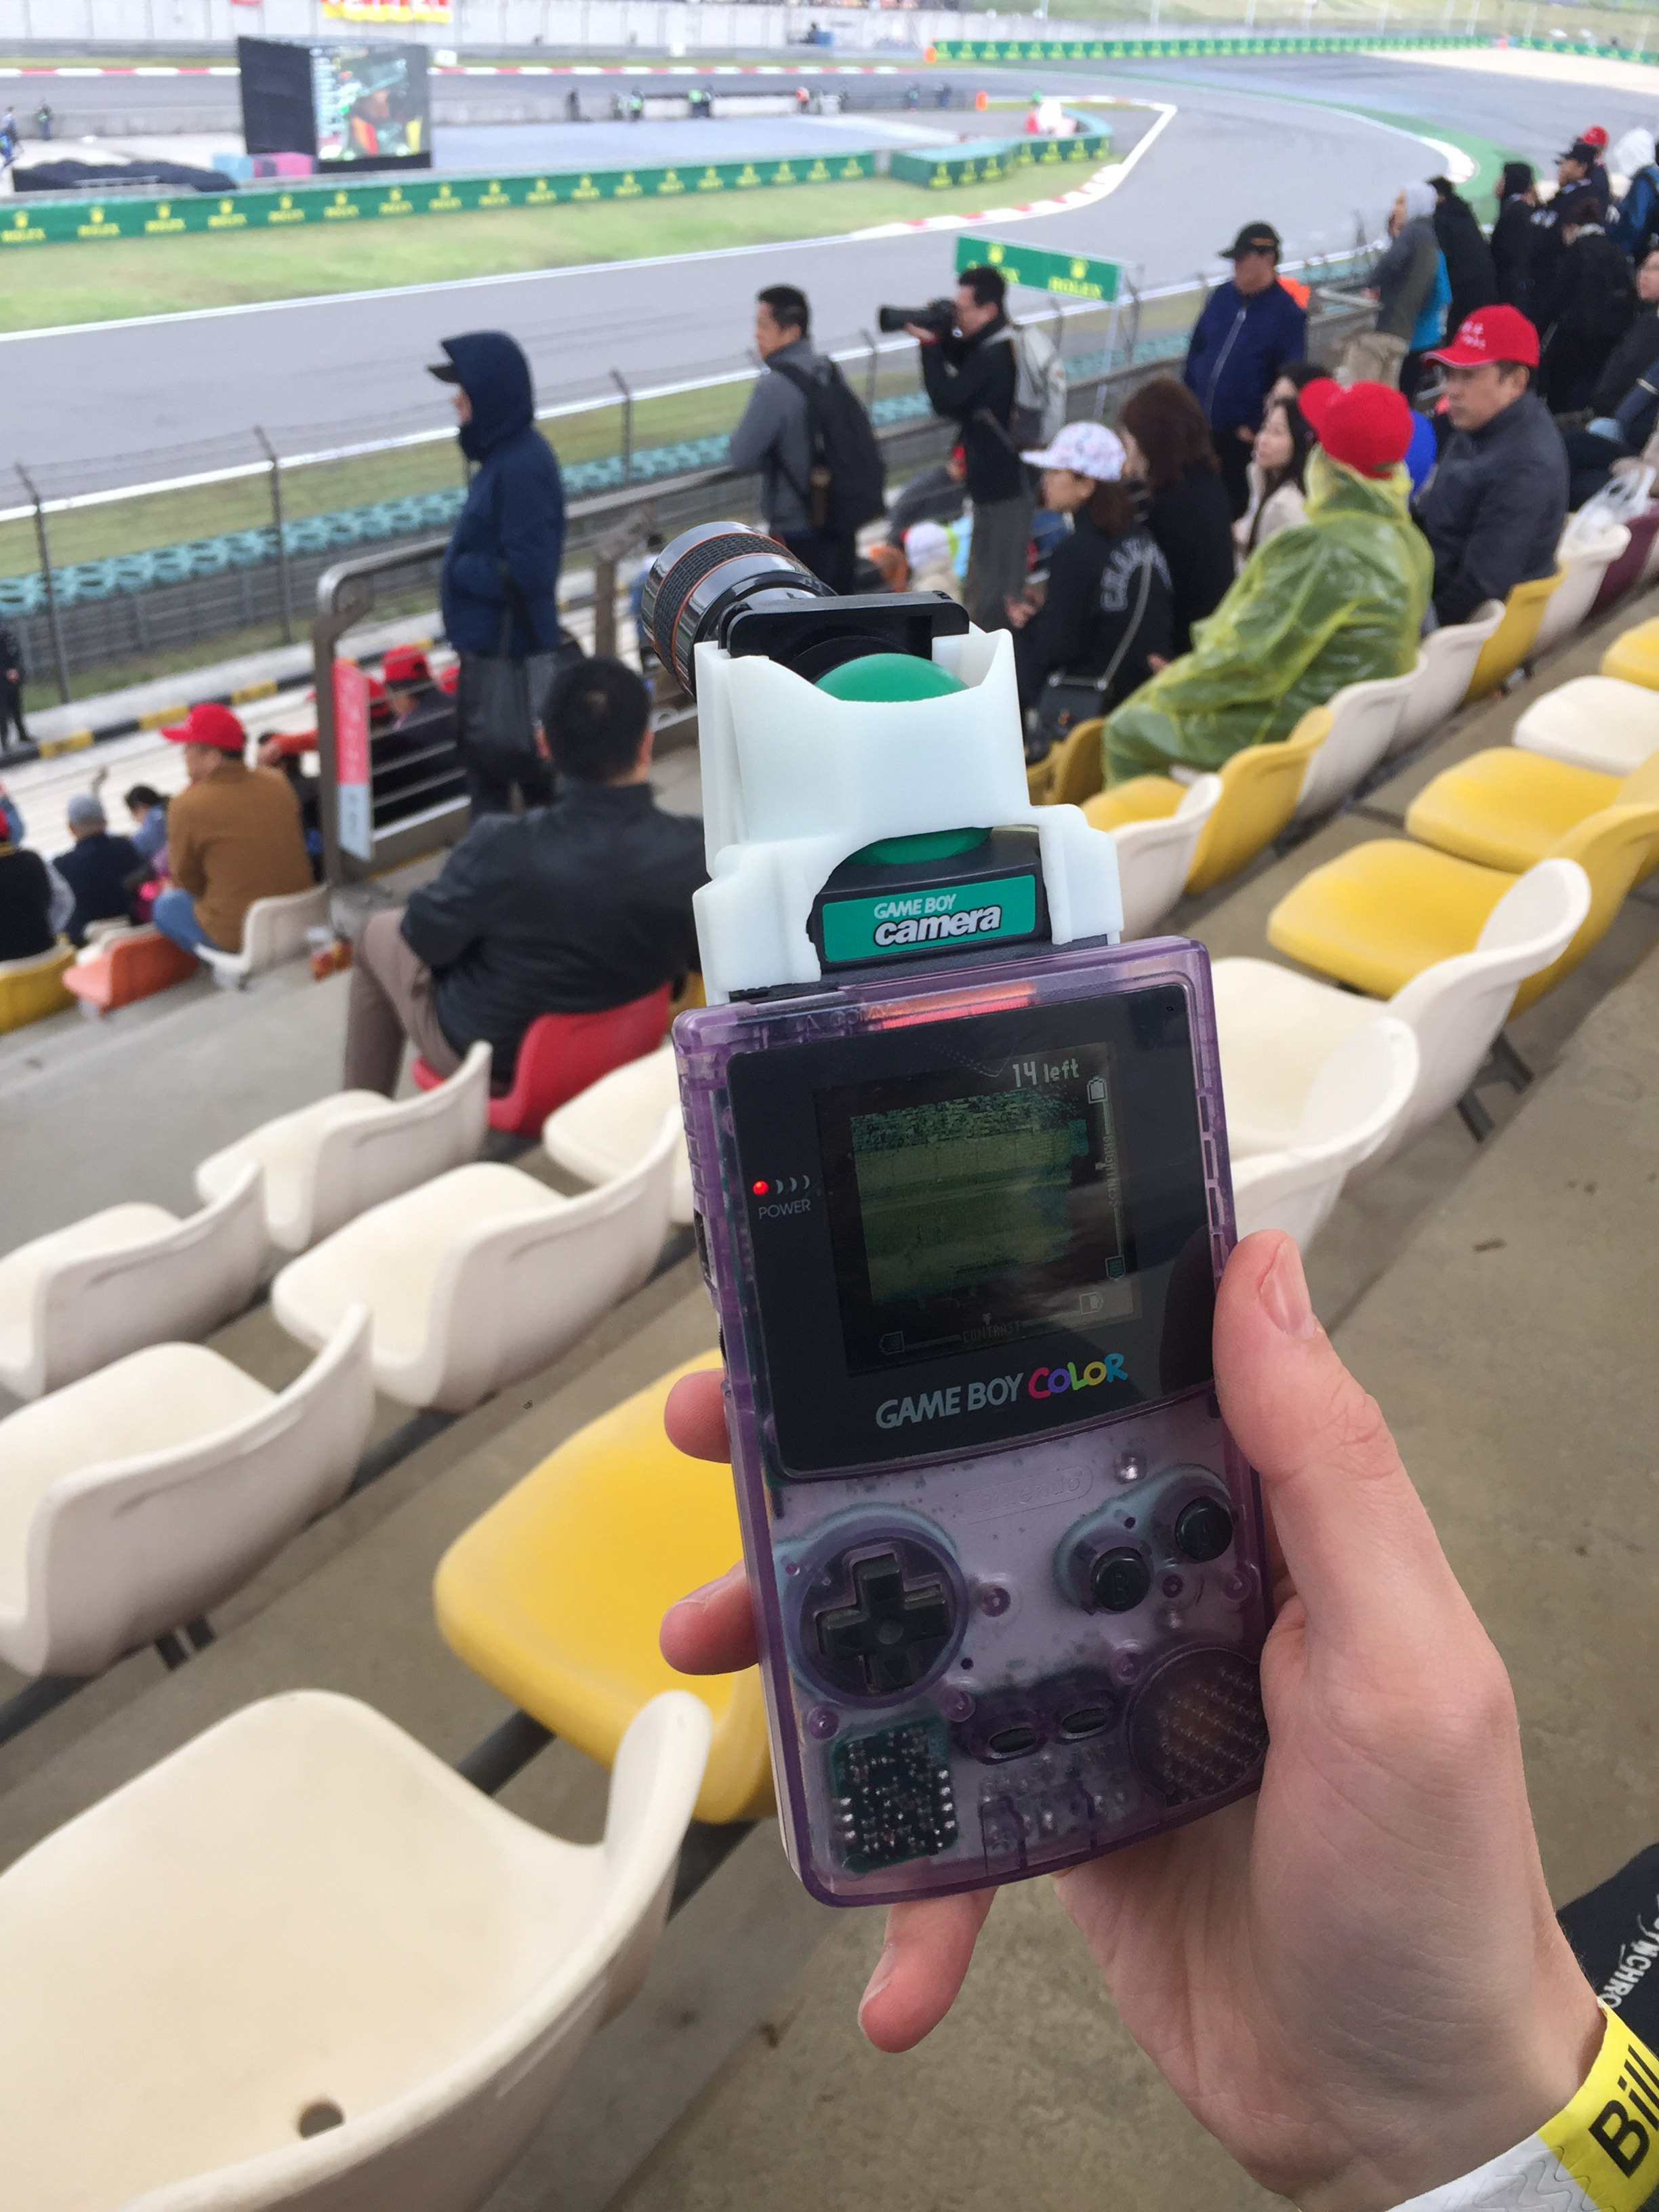 The Game Boy, camera and lens combo in action